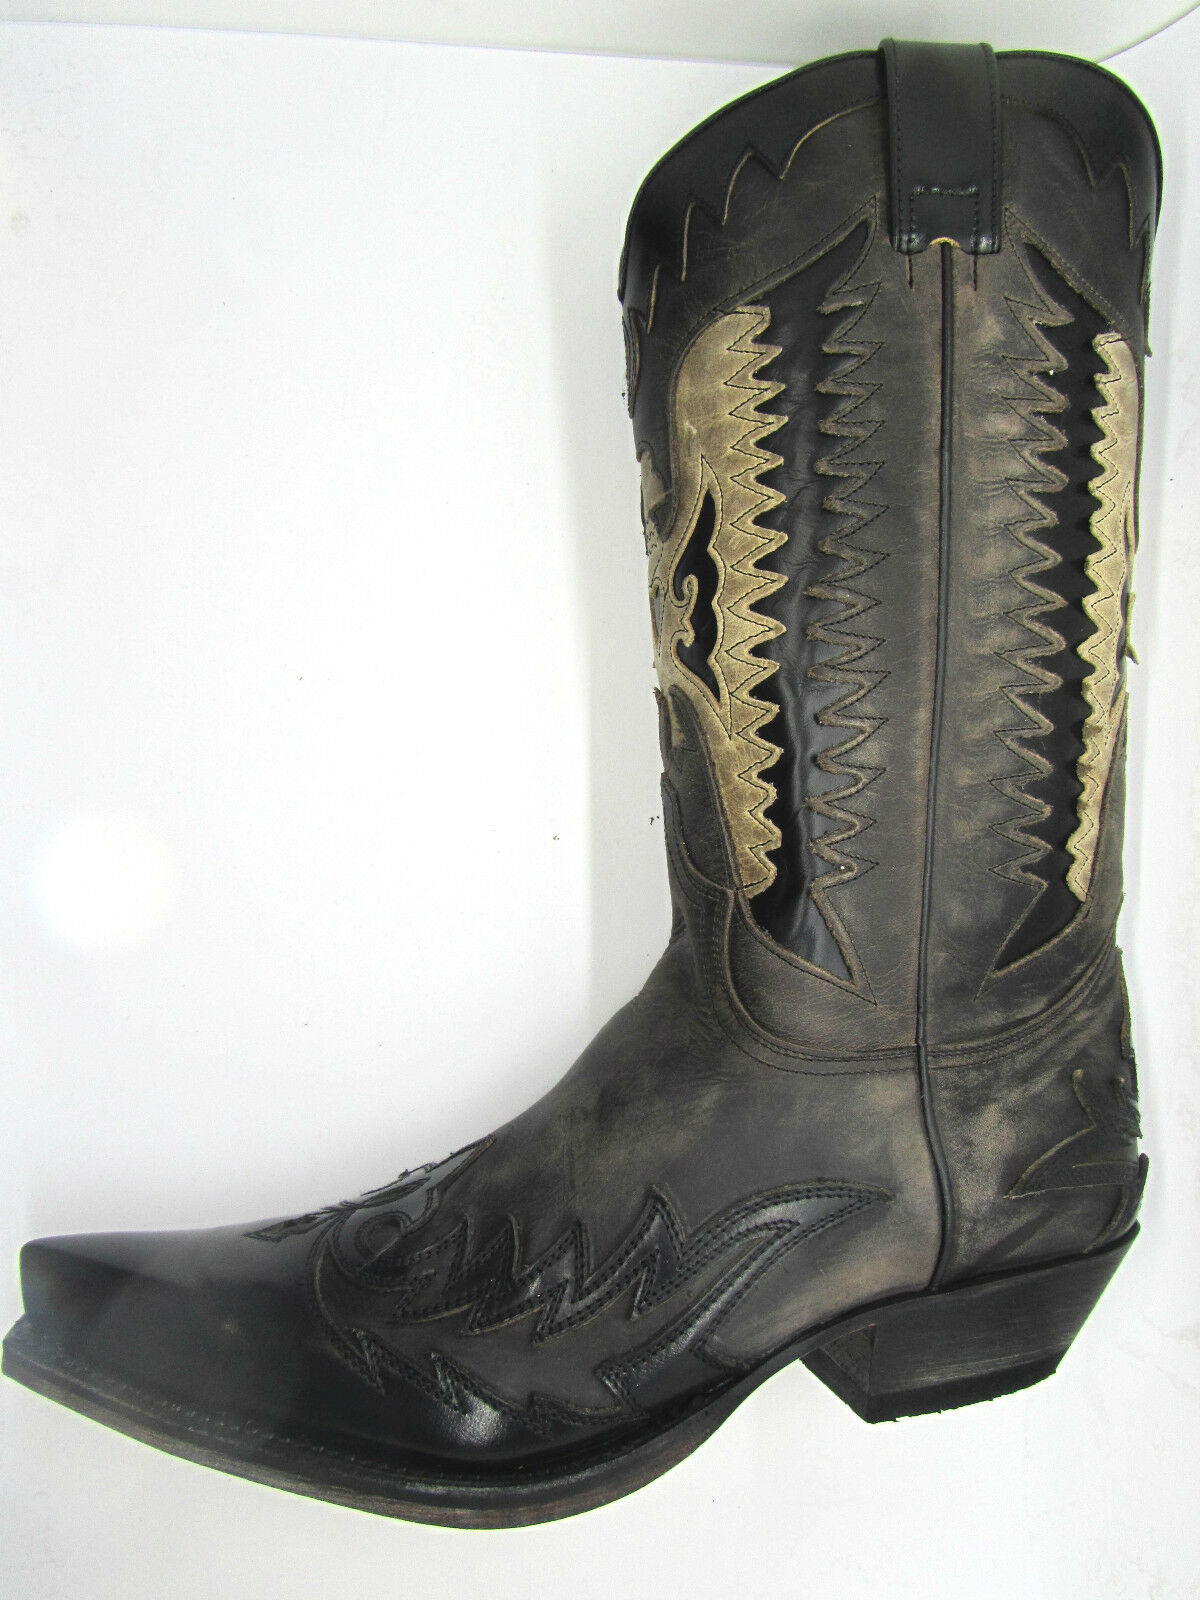 Sendra 13040 Cowboy Boots Black Grey Distressed Leather Eagle Western Biker Boot